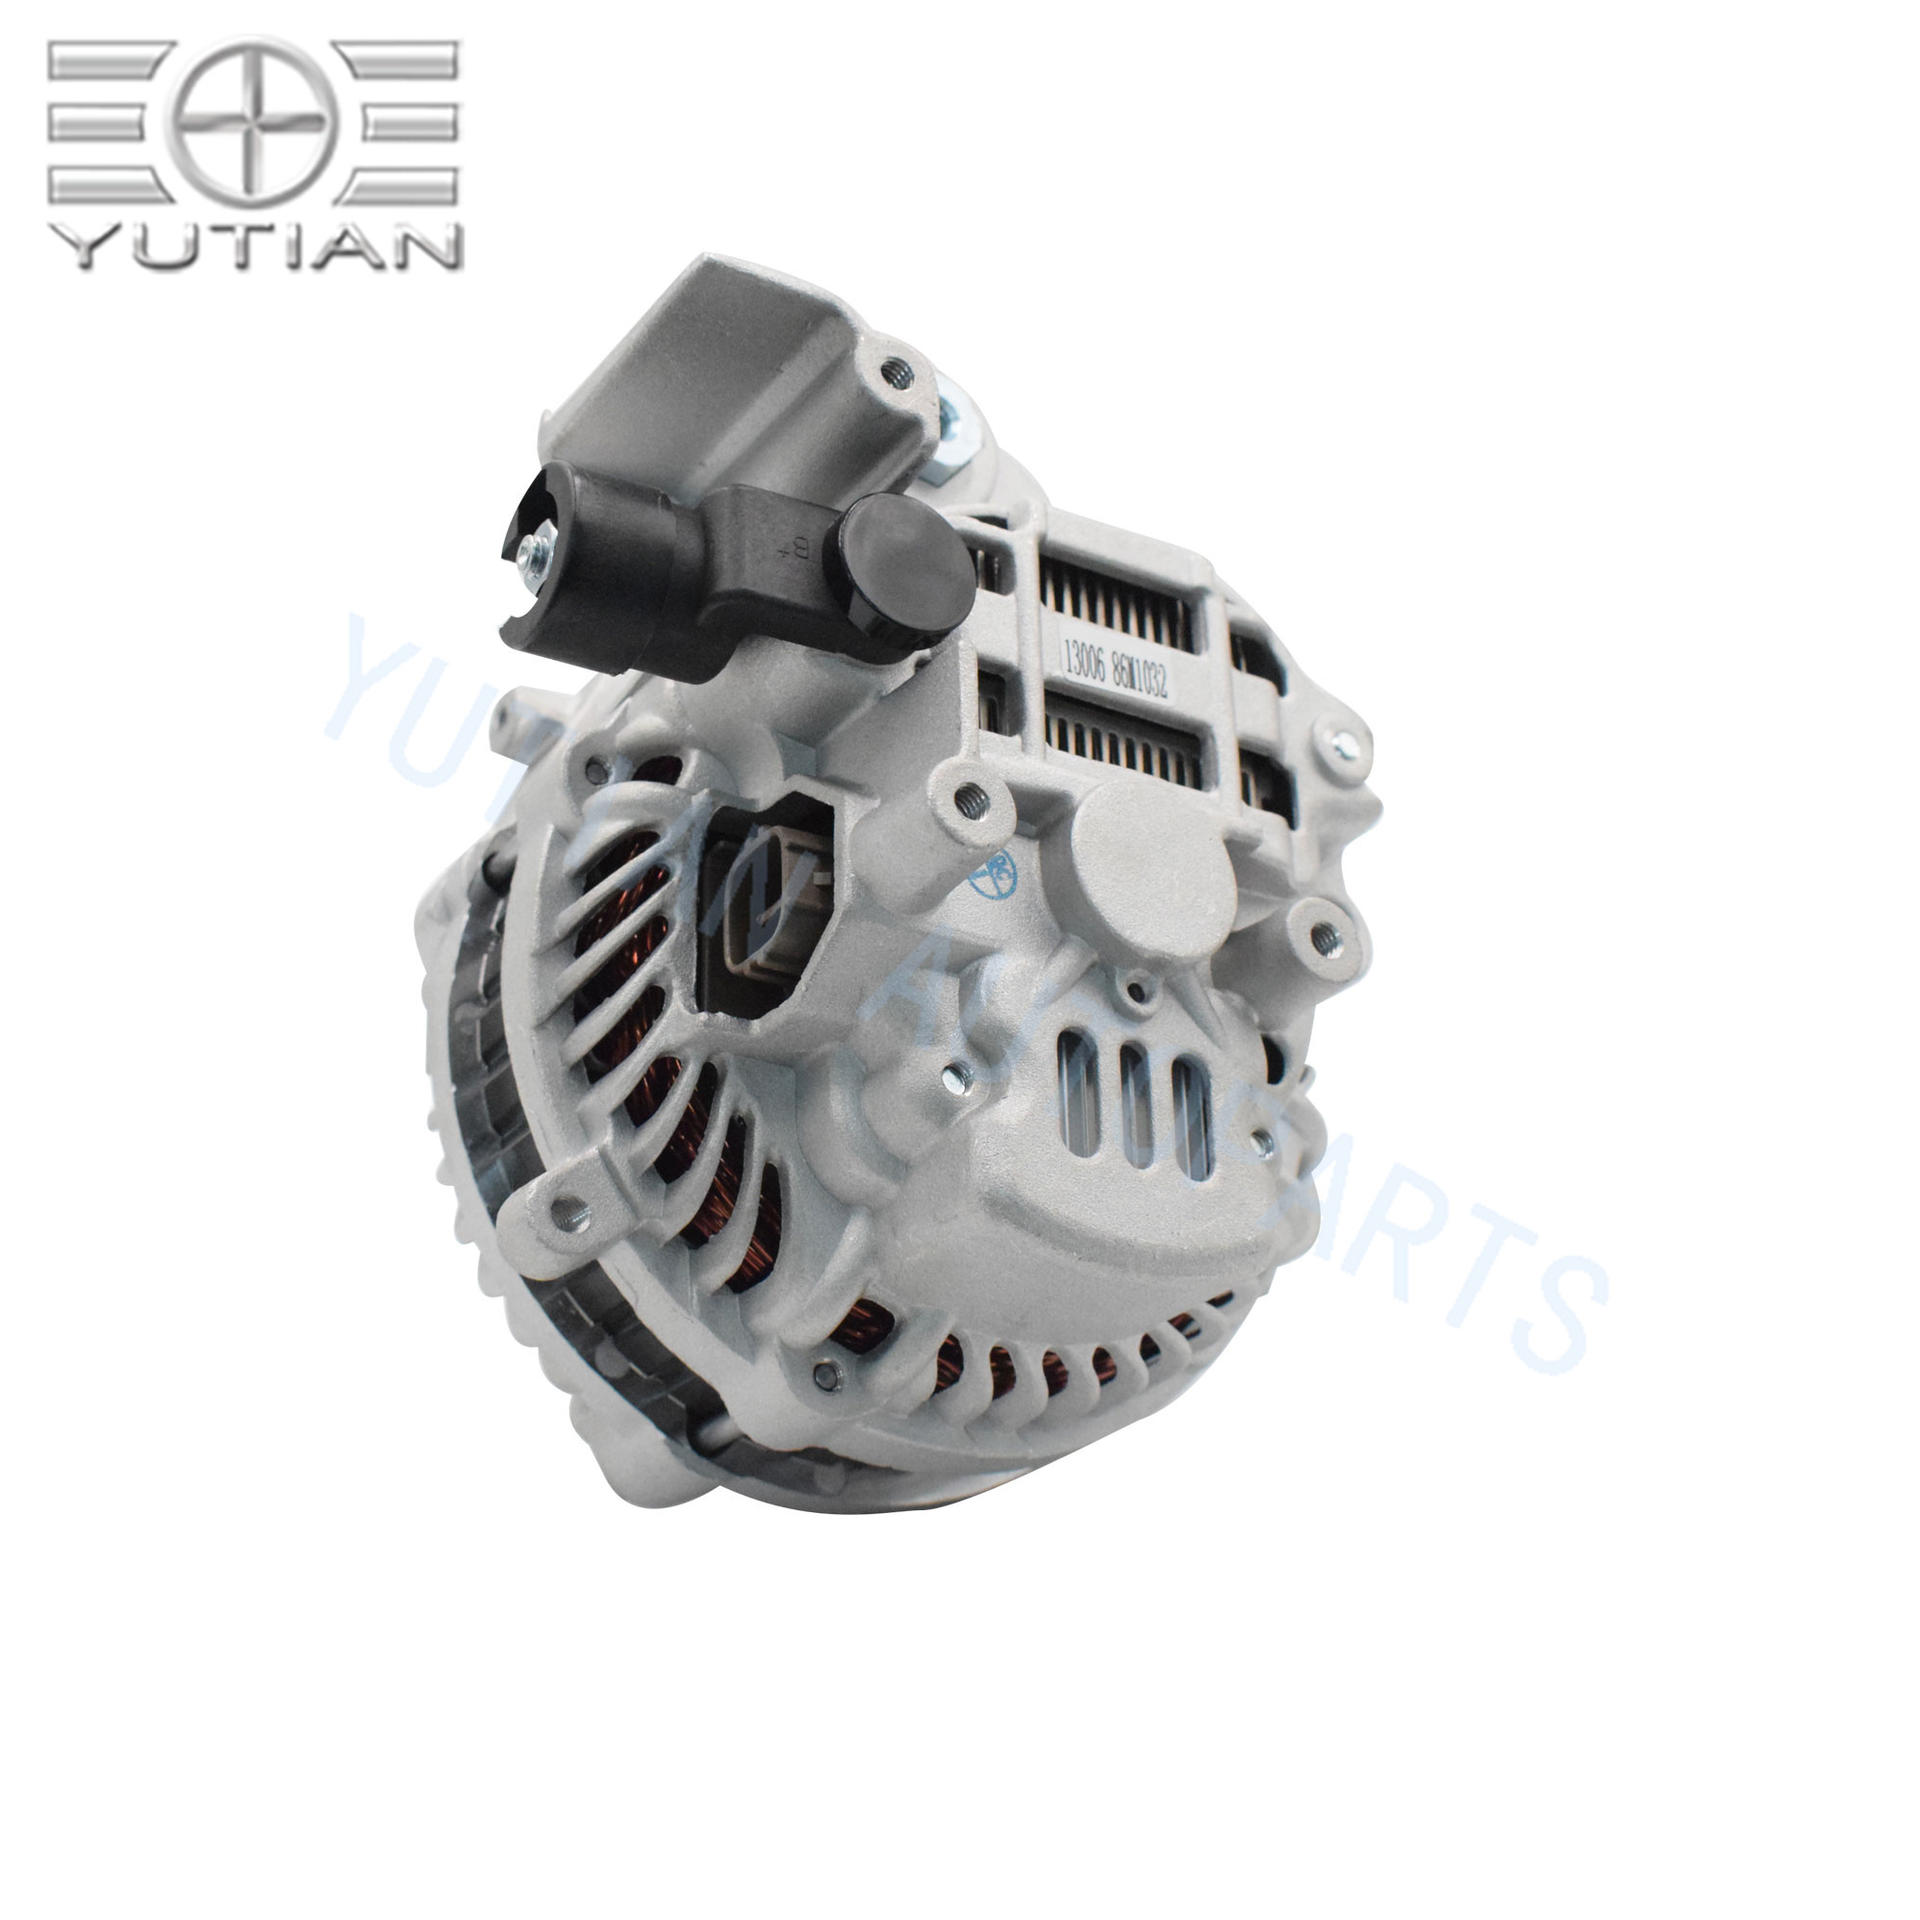 For Honda City Civic Car Generator 14V/80A/7PK/N 31100-RNA-A01